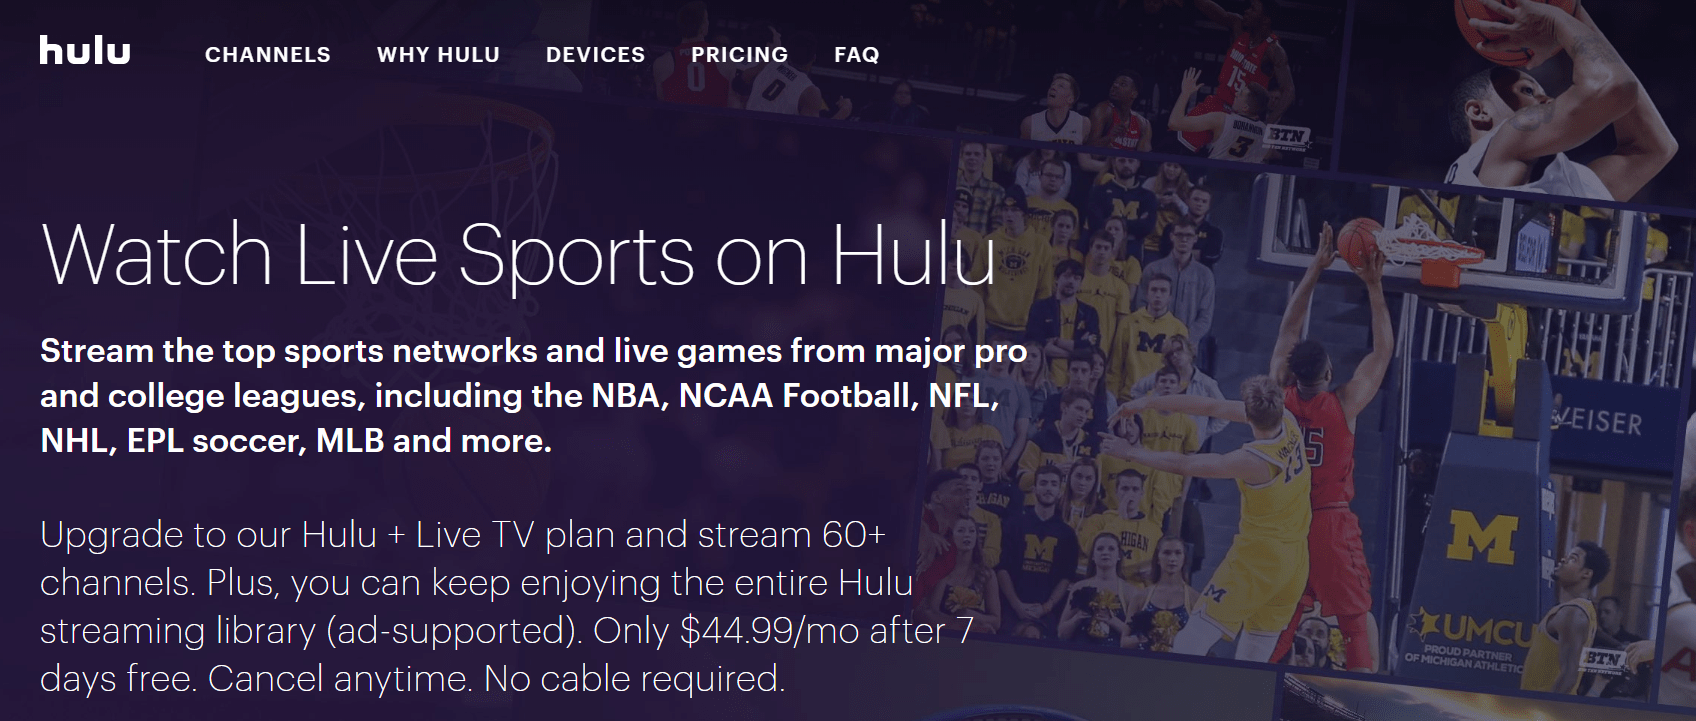 Hulu Plus Hulu Live Are Now On Android TV